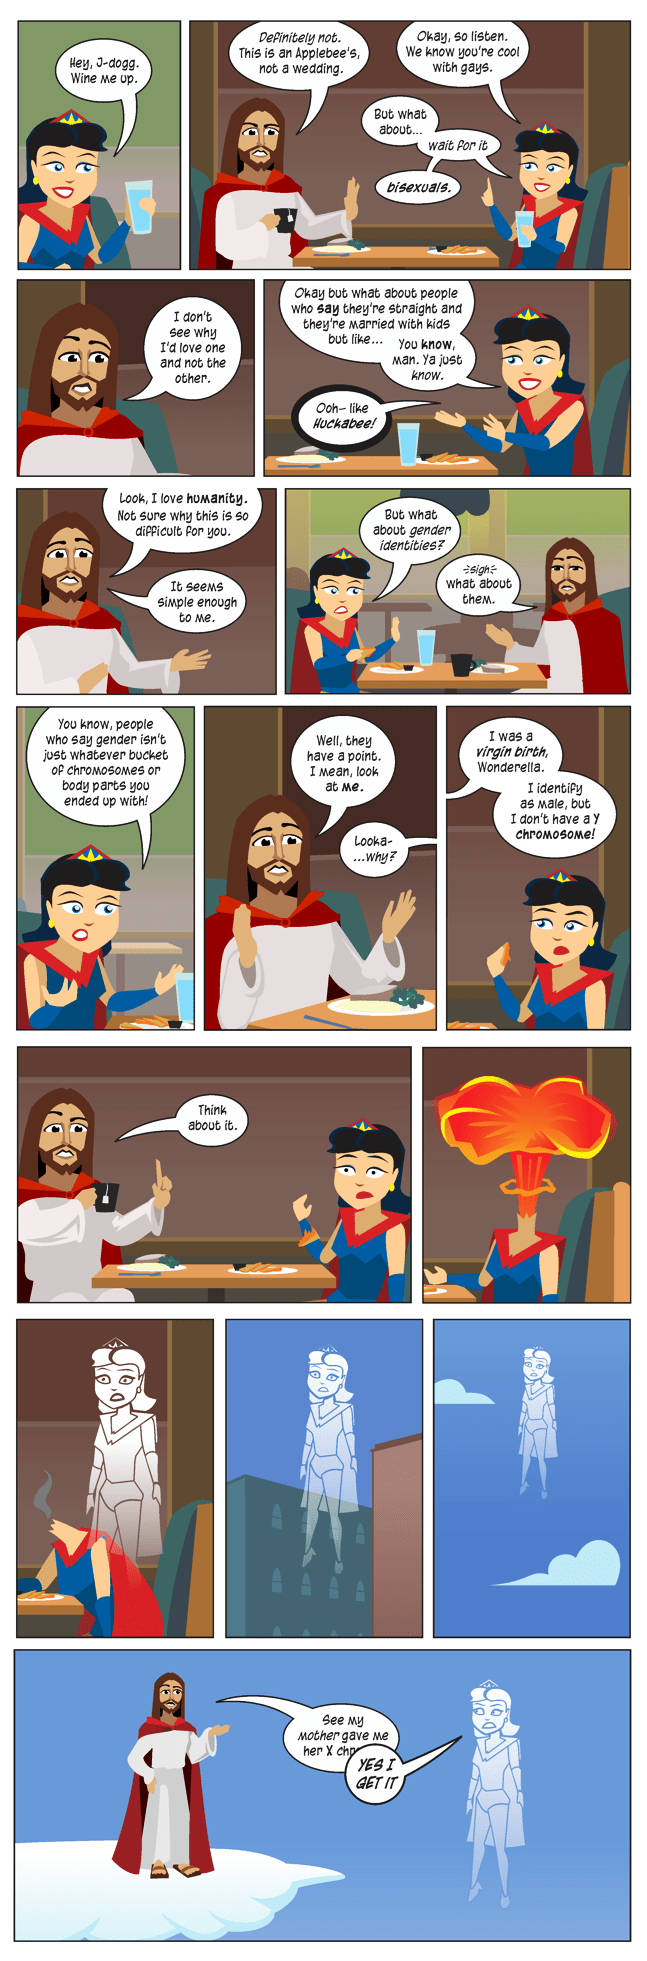 jesus,religion,hippies,web comics